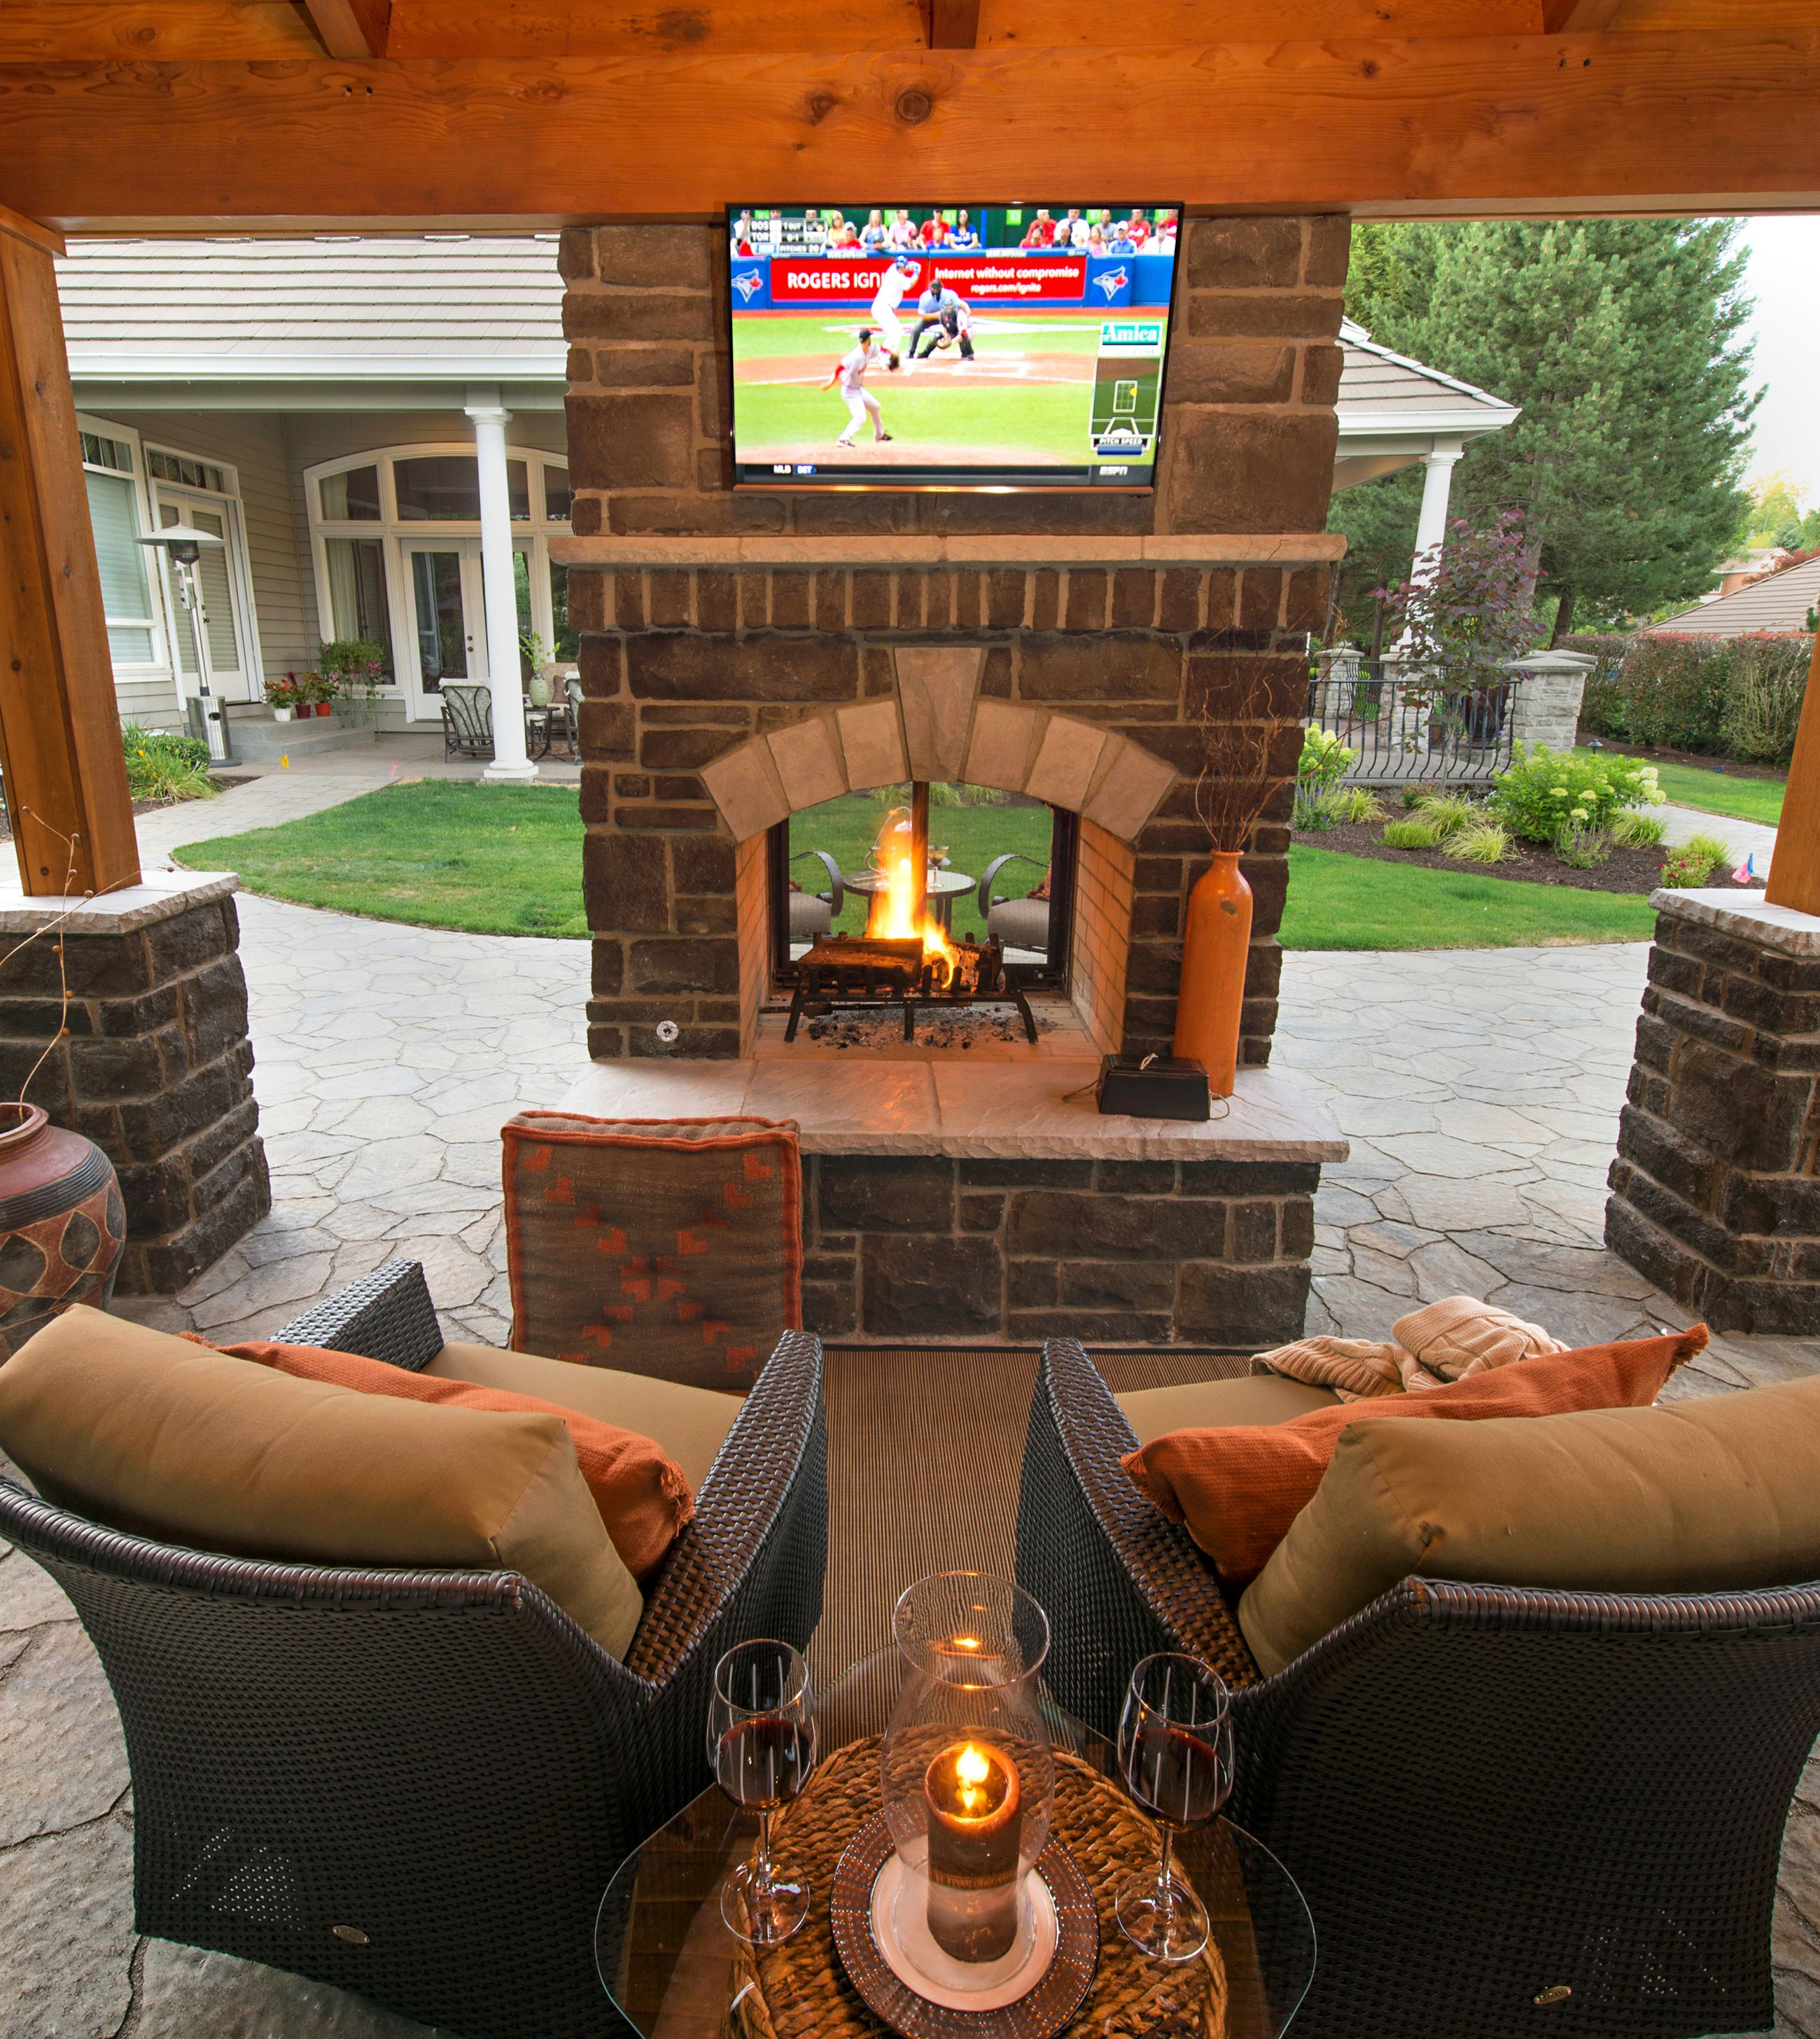 Outdoor Patio Fireplace Designs with TV